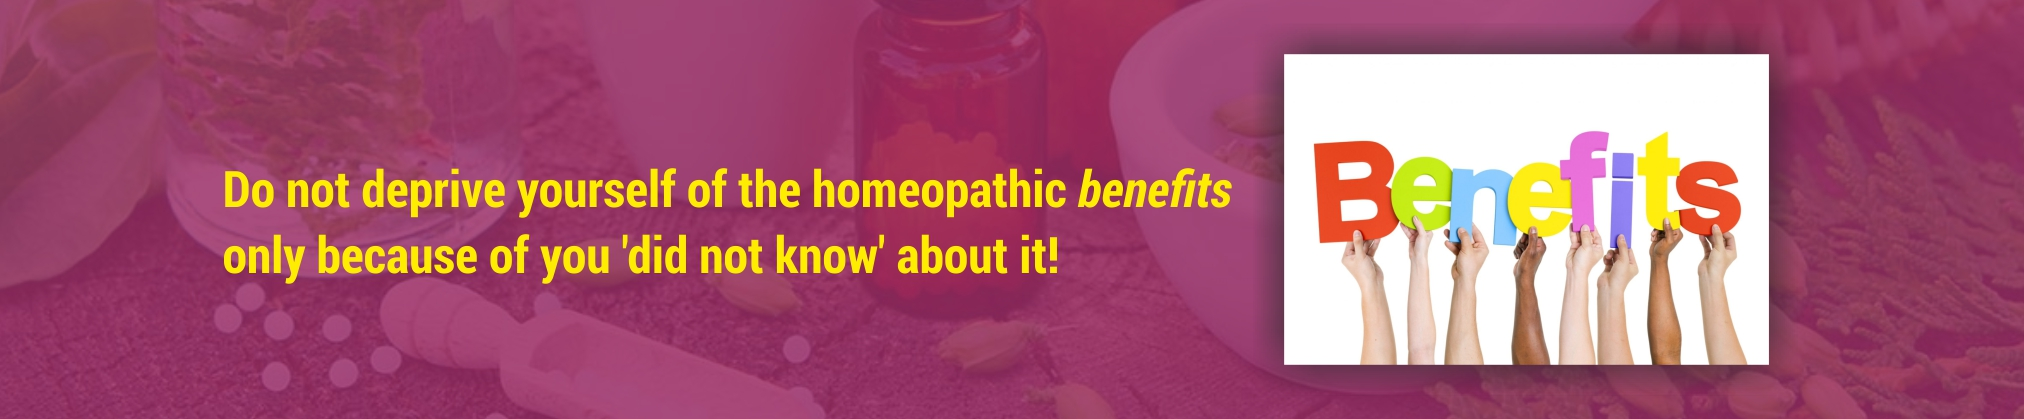 Dr. Rajesh Shah Homeopathy clinic